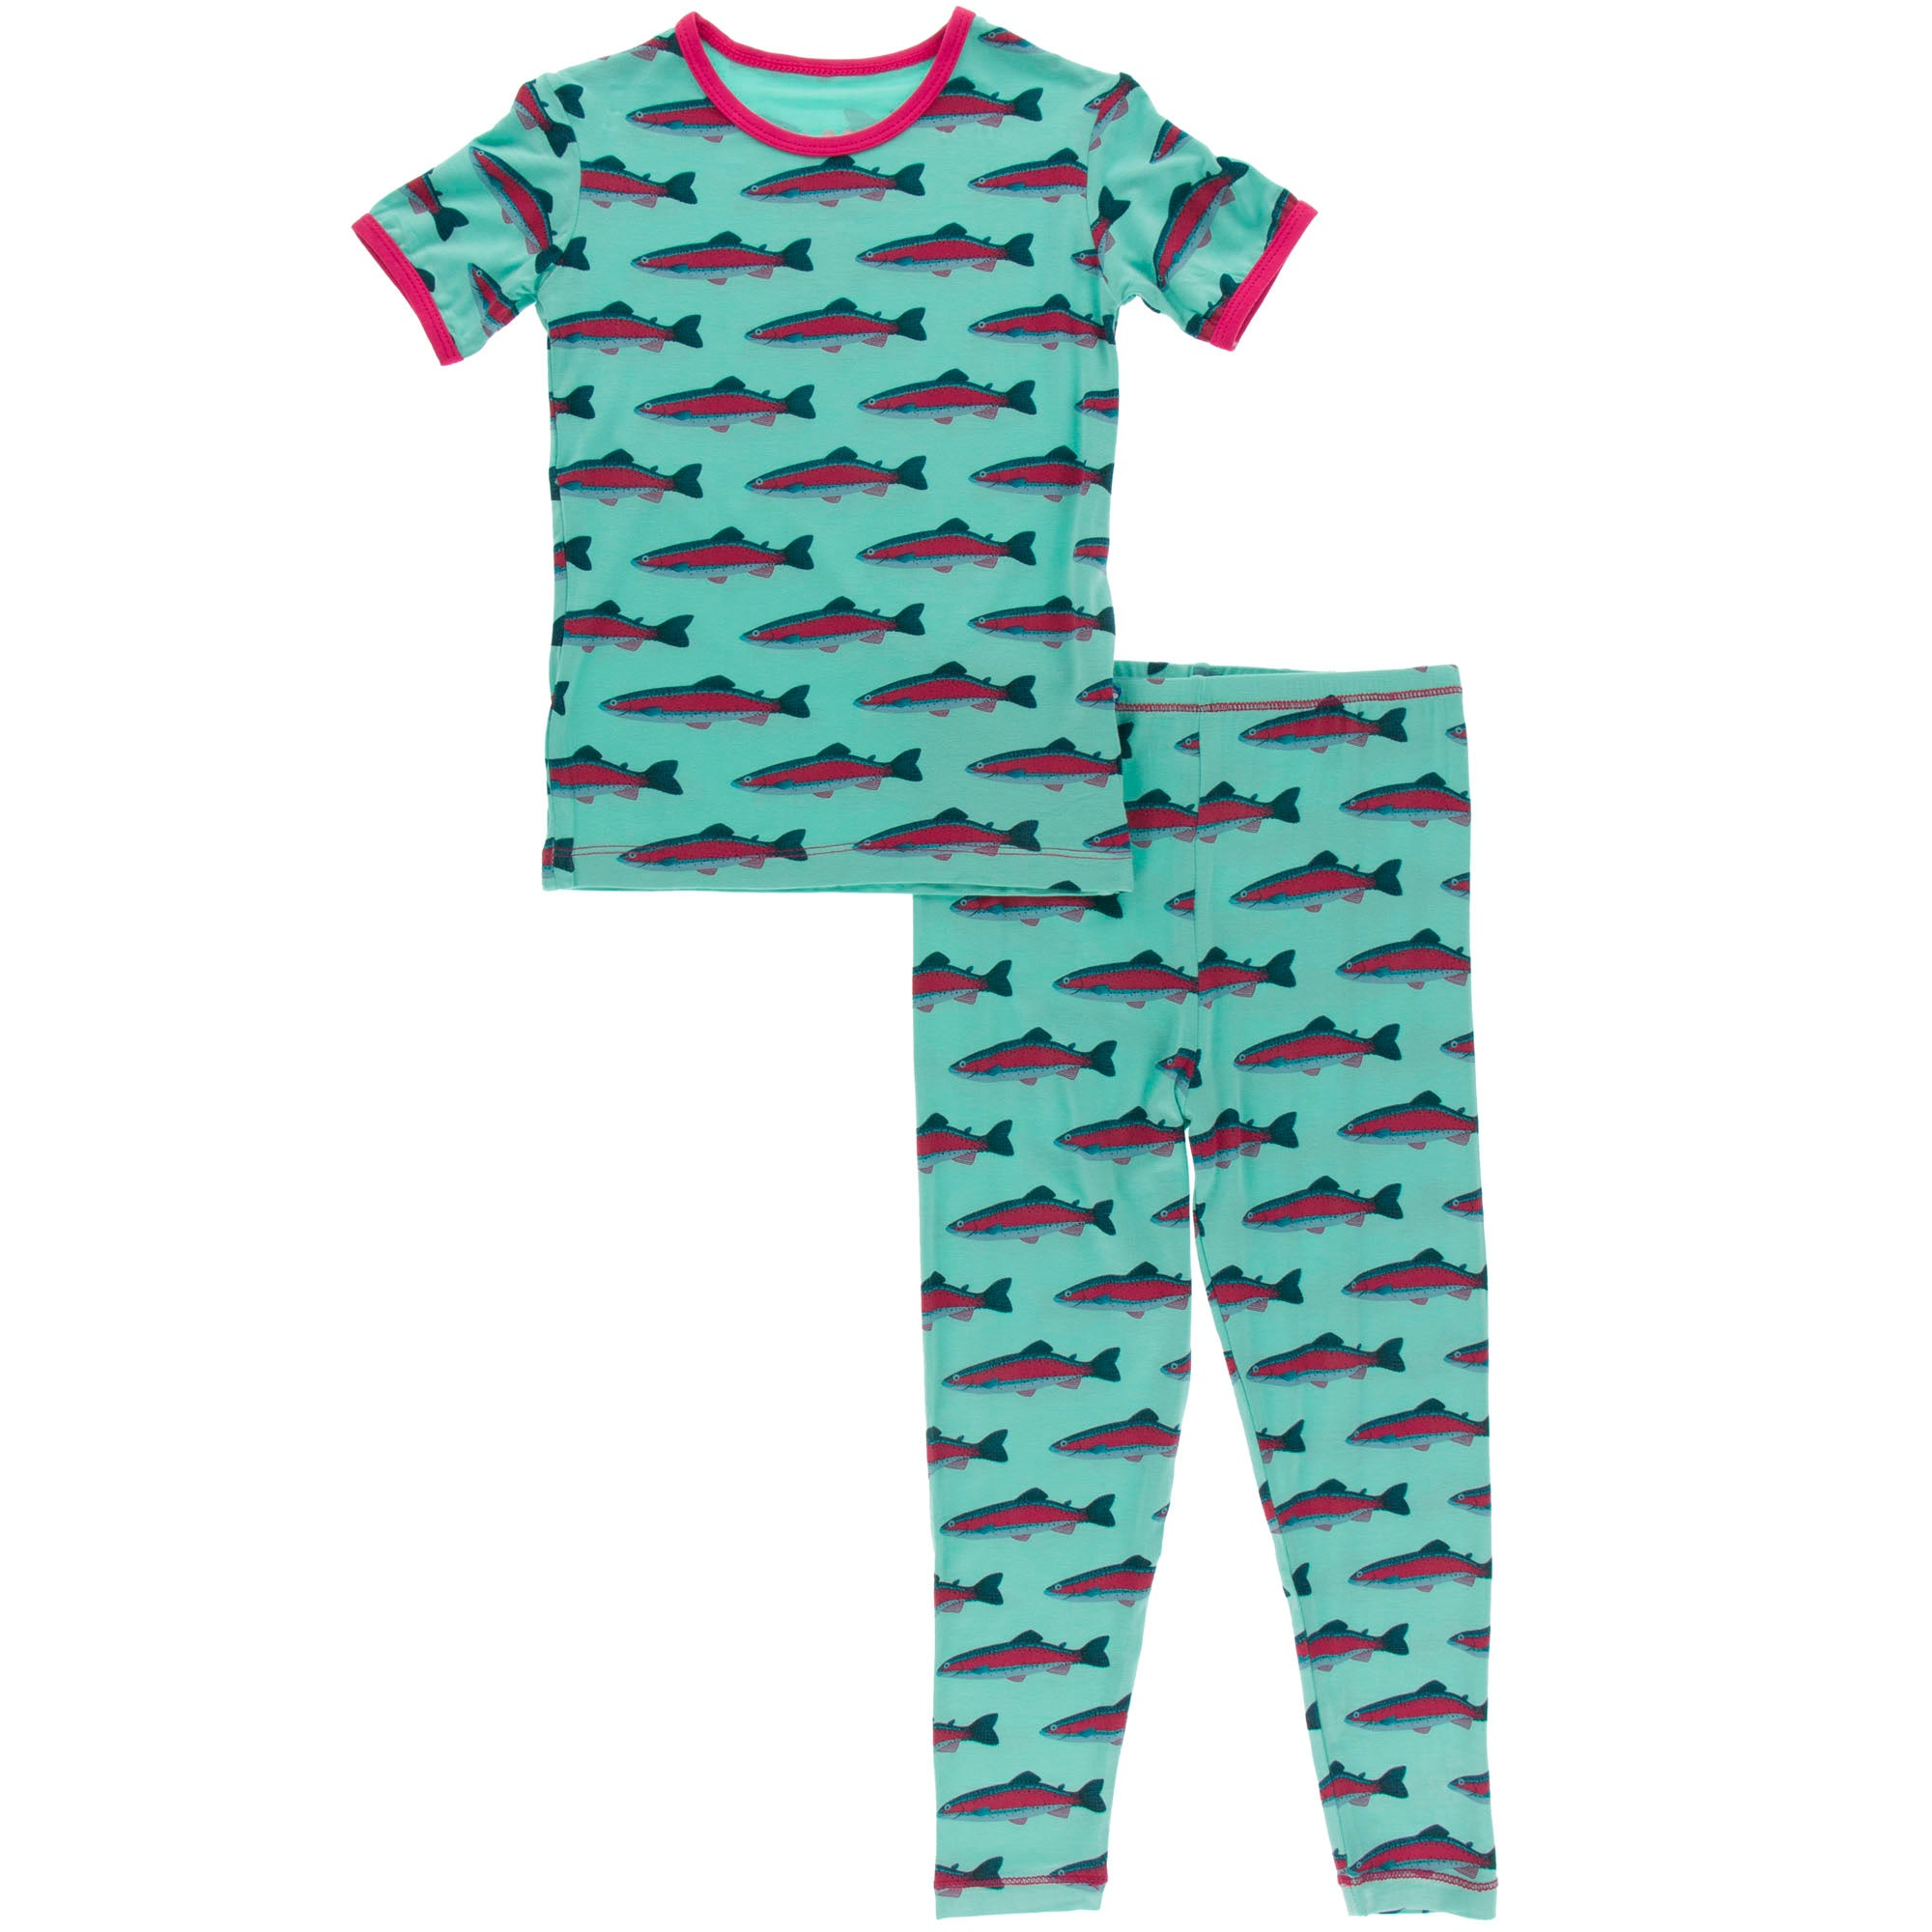 KicKee Pants Short Sleeve Pajama Set - Glass Rainbow Trout